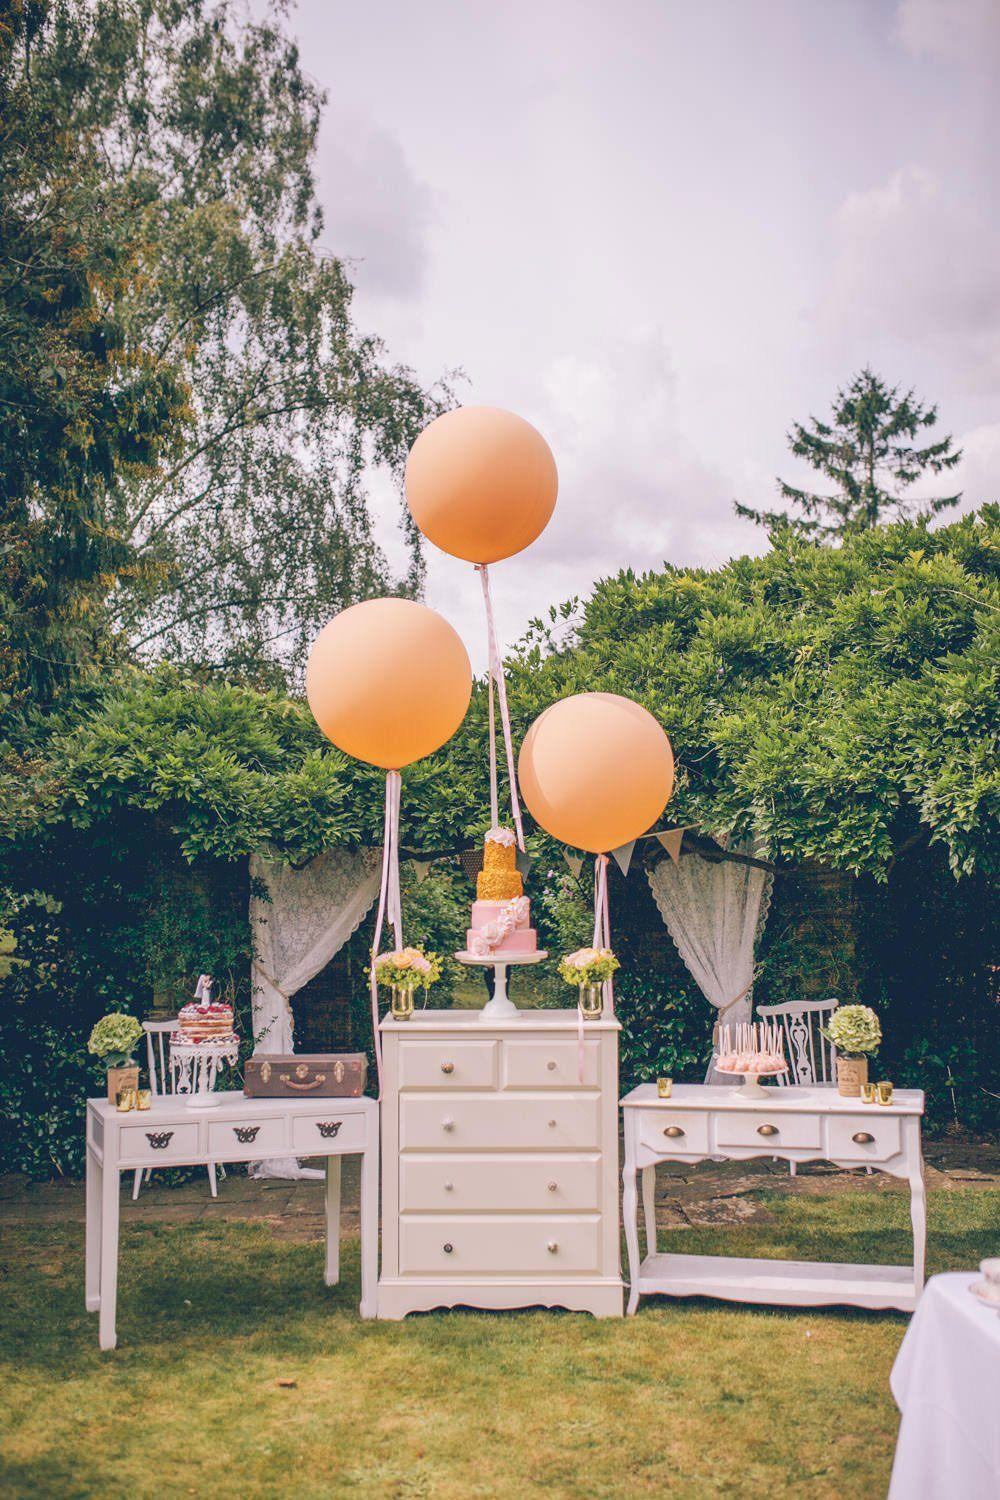 Simple Wedding Decorating: 95 Smashing Ideas to Be Inspired 65